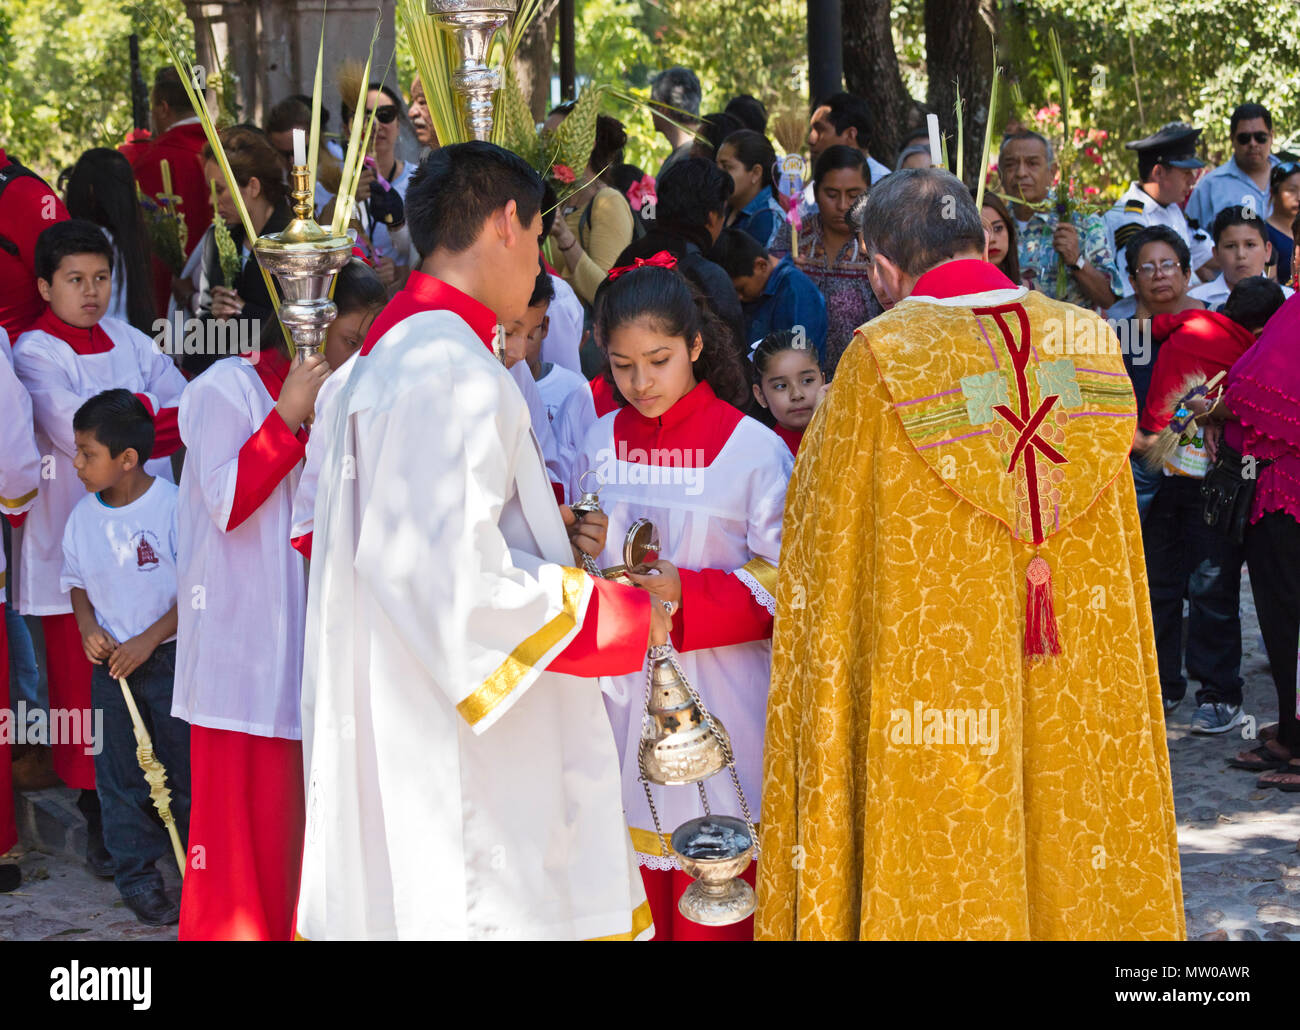 A CATHOLIC PRIEST talks with participants a the start of the PALM SUNDAY procession from Parque Juarez to the Jardin - SAN MIGUEL DE ALLENDE, MEXICO - Stock Image